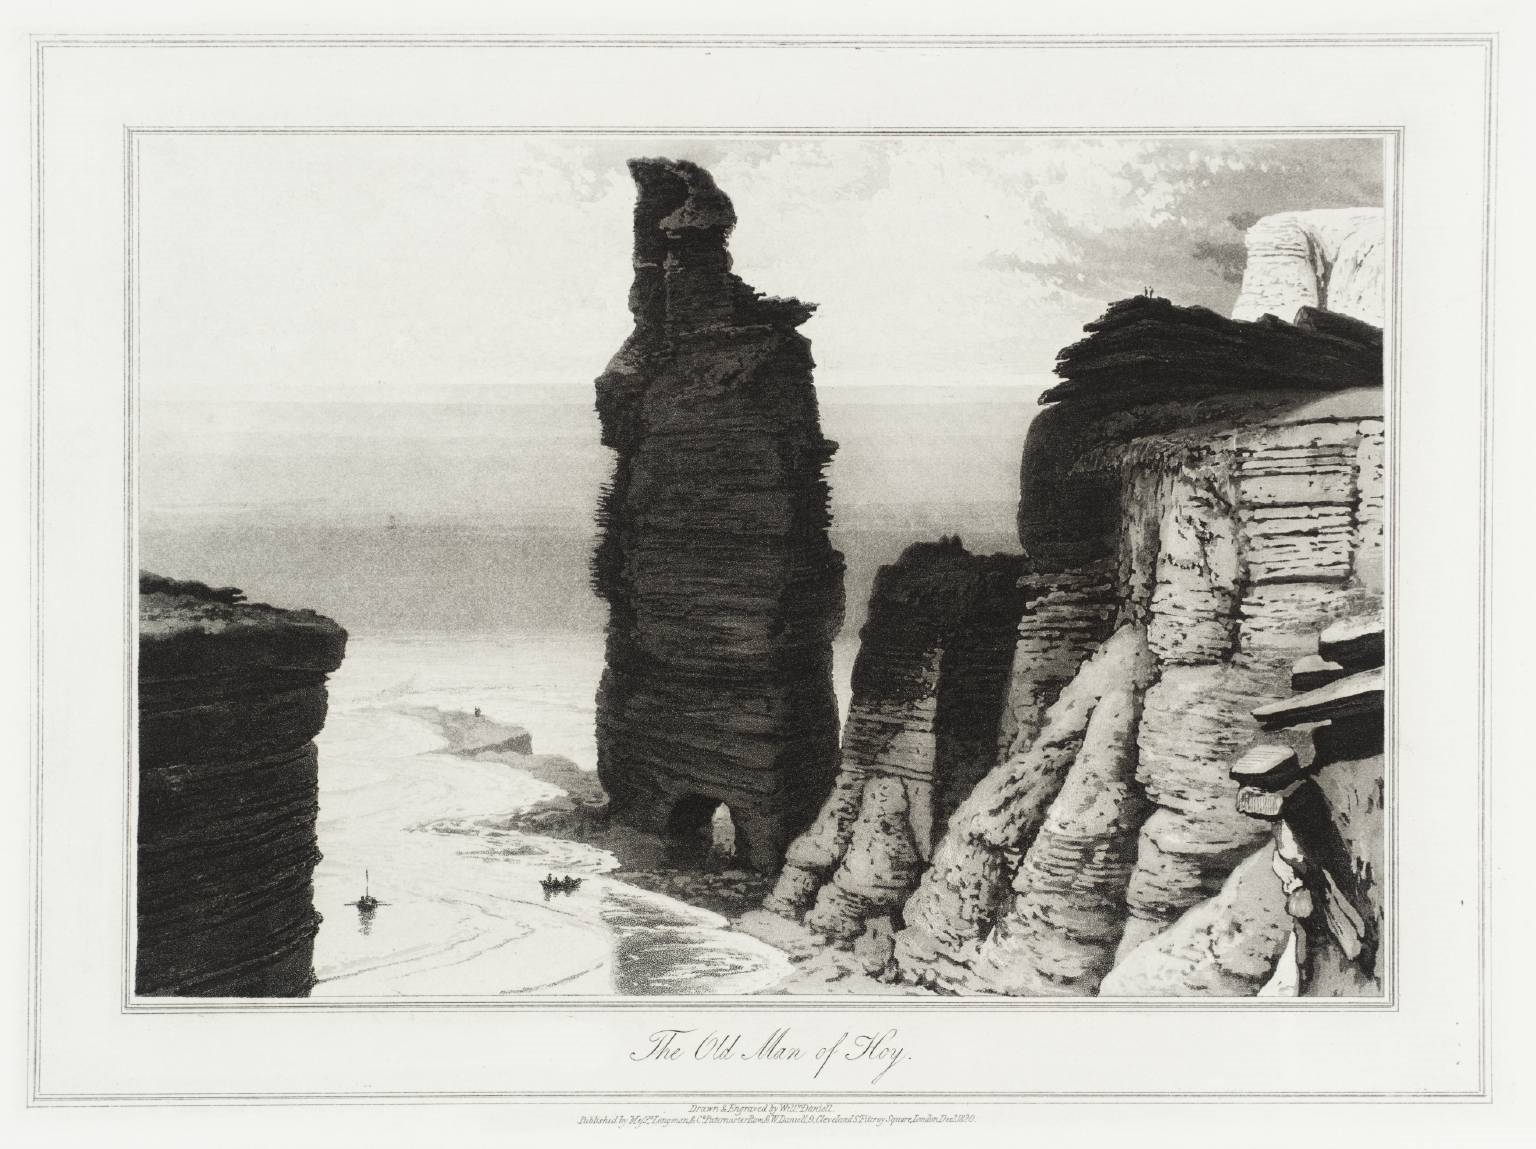 Vintage William Daniell illustration of the Old Man of Hoy